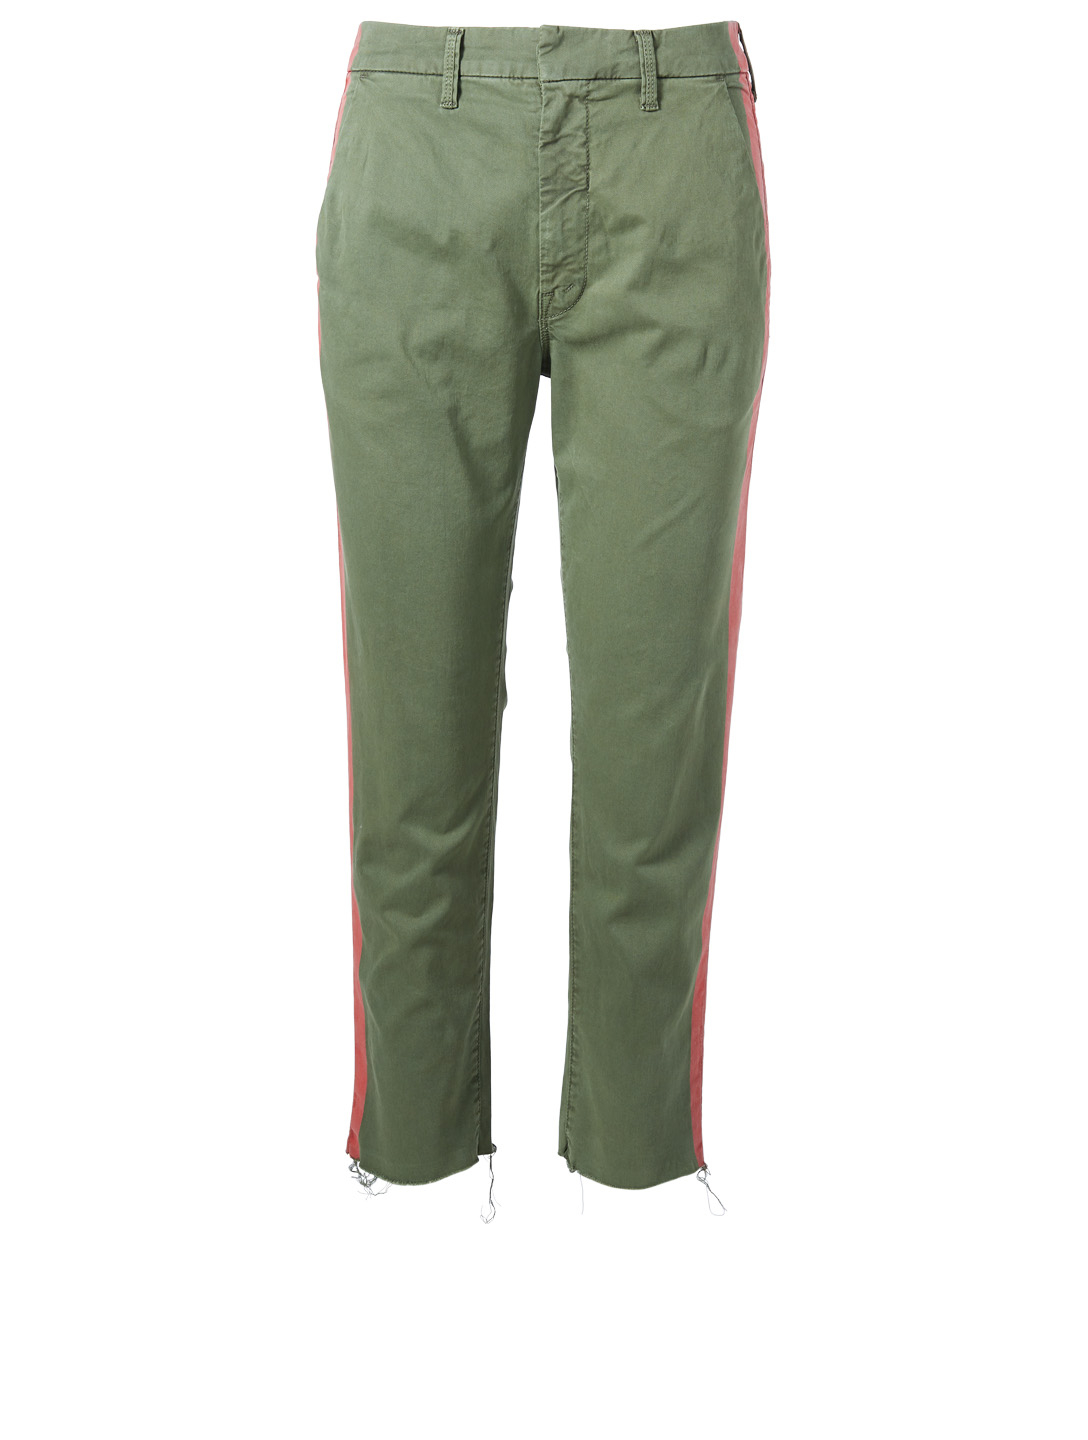 MOTHER Shaker Prep Fray Pants Women's Green